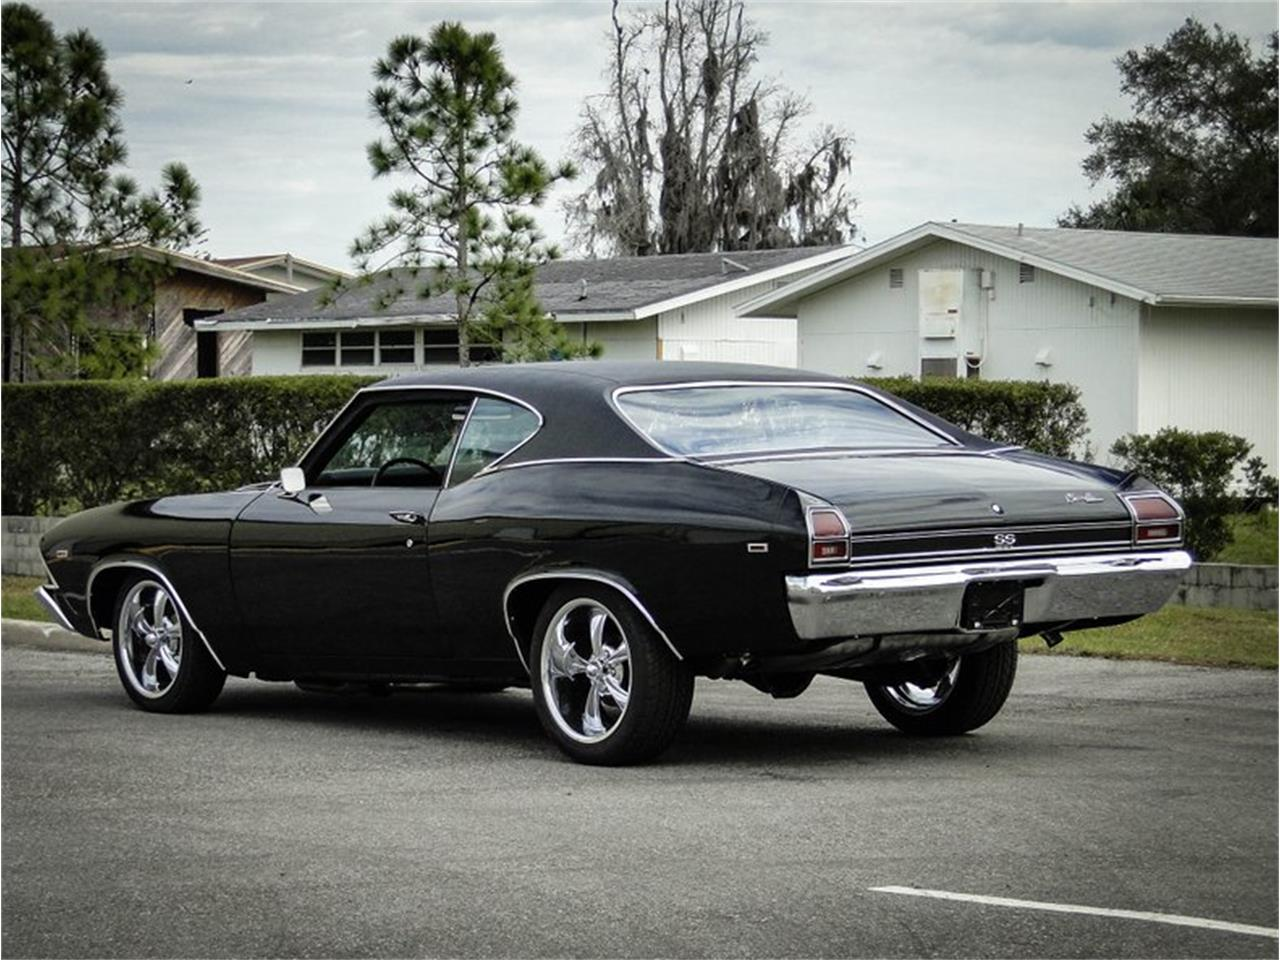 Large Picture of '69 Chevrolet Chevelle - $39,997.00 Offered by Skyway Classics - PJQR